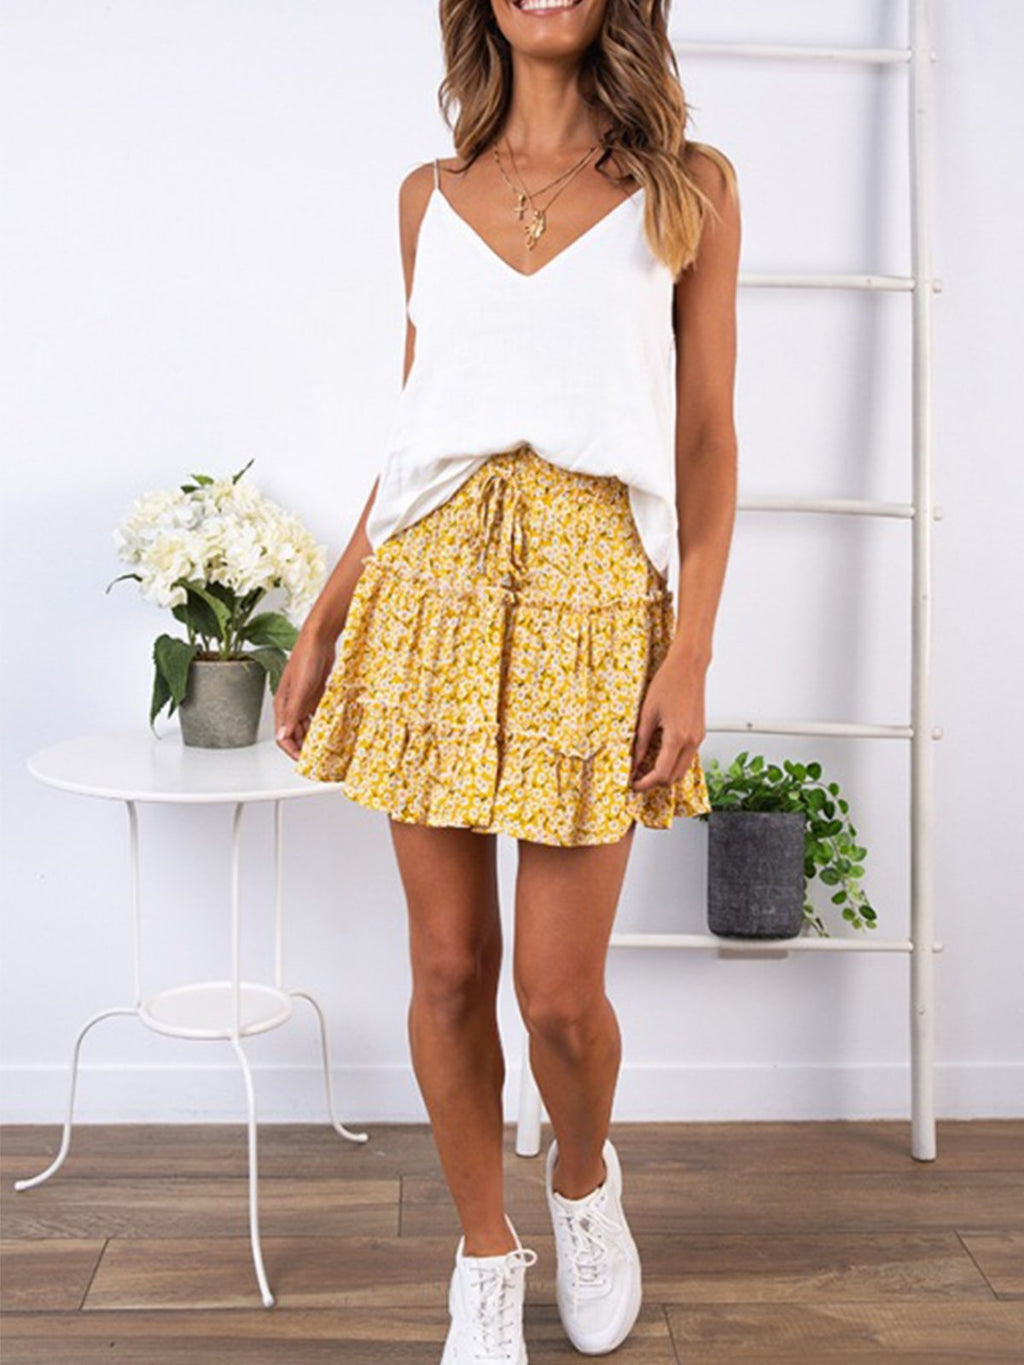 Floral/ Polka Dot/Leopard High Waist A-line Mini Skirt